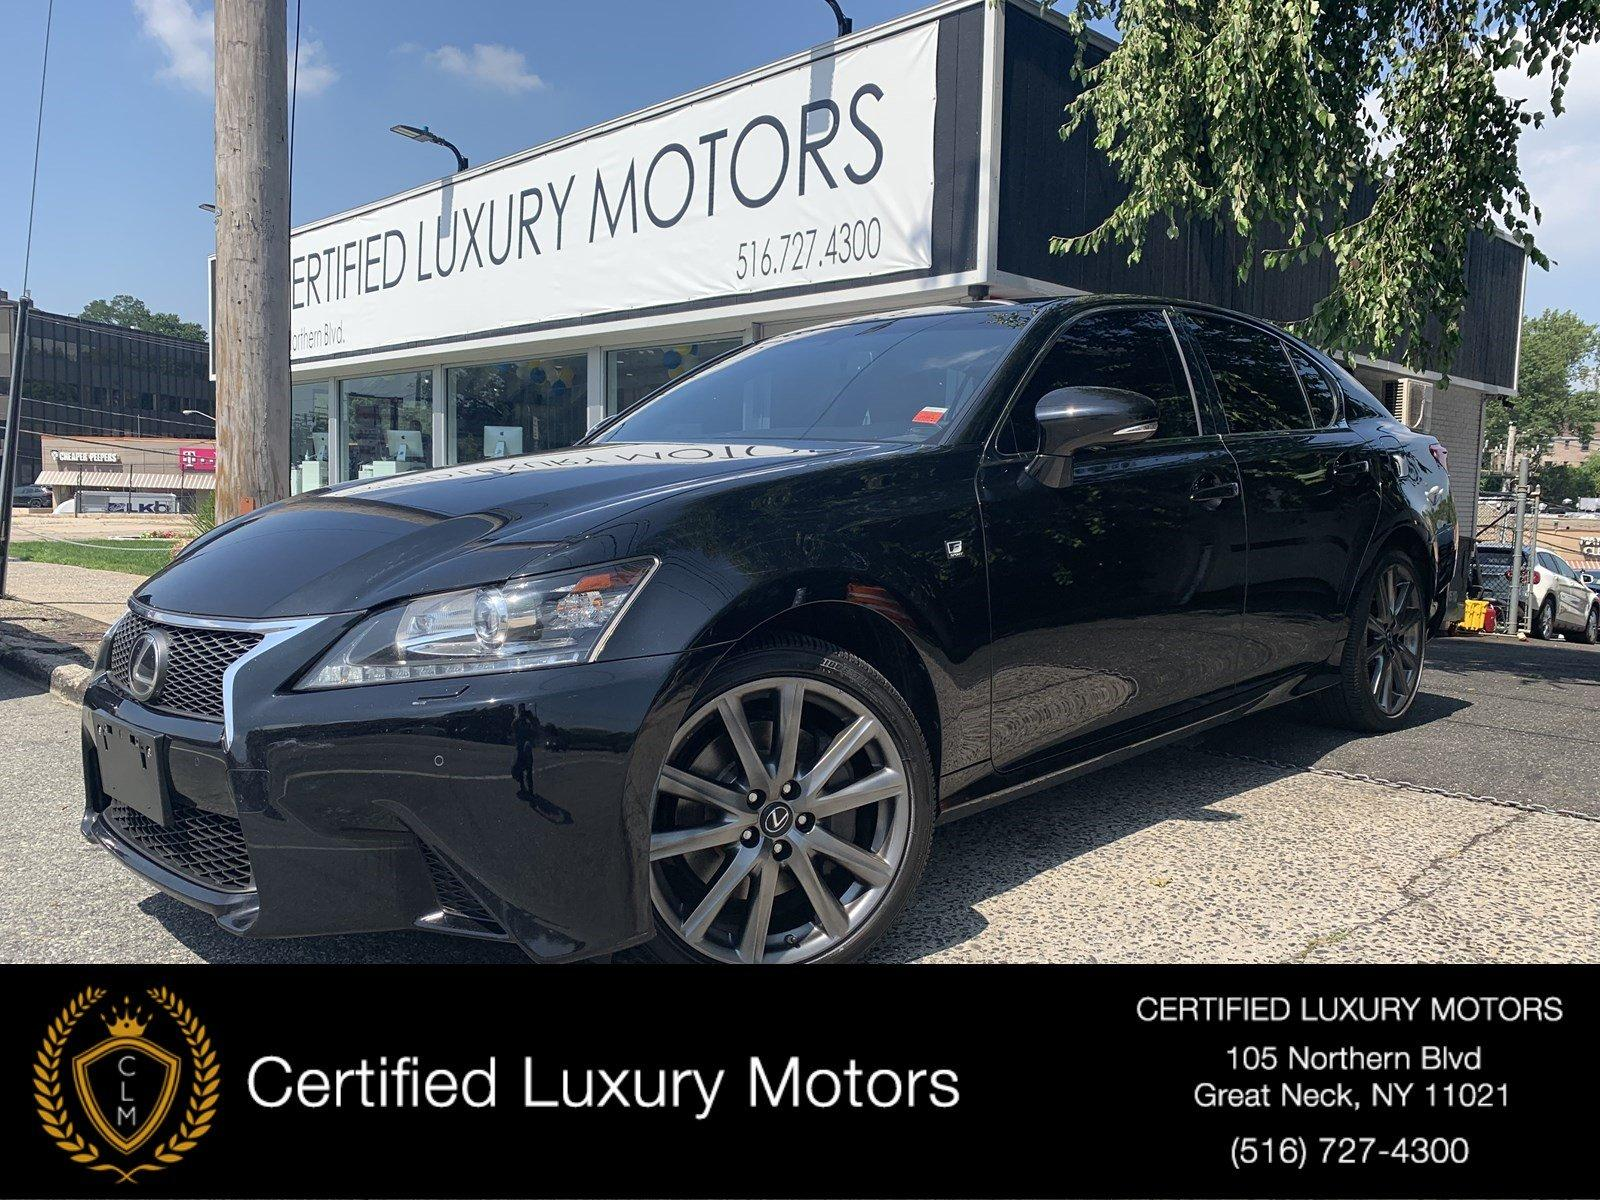 Used 2014 Lexus GS 350 AWD F-Sport (Red Interior)  | Great Neck, NY